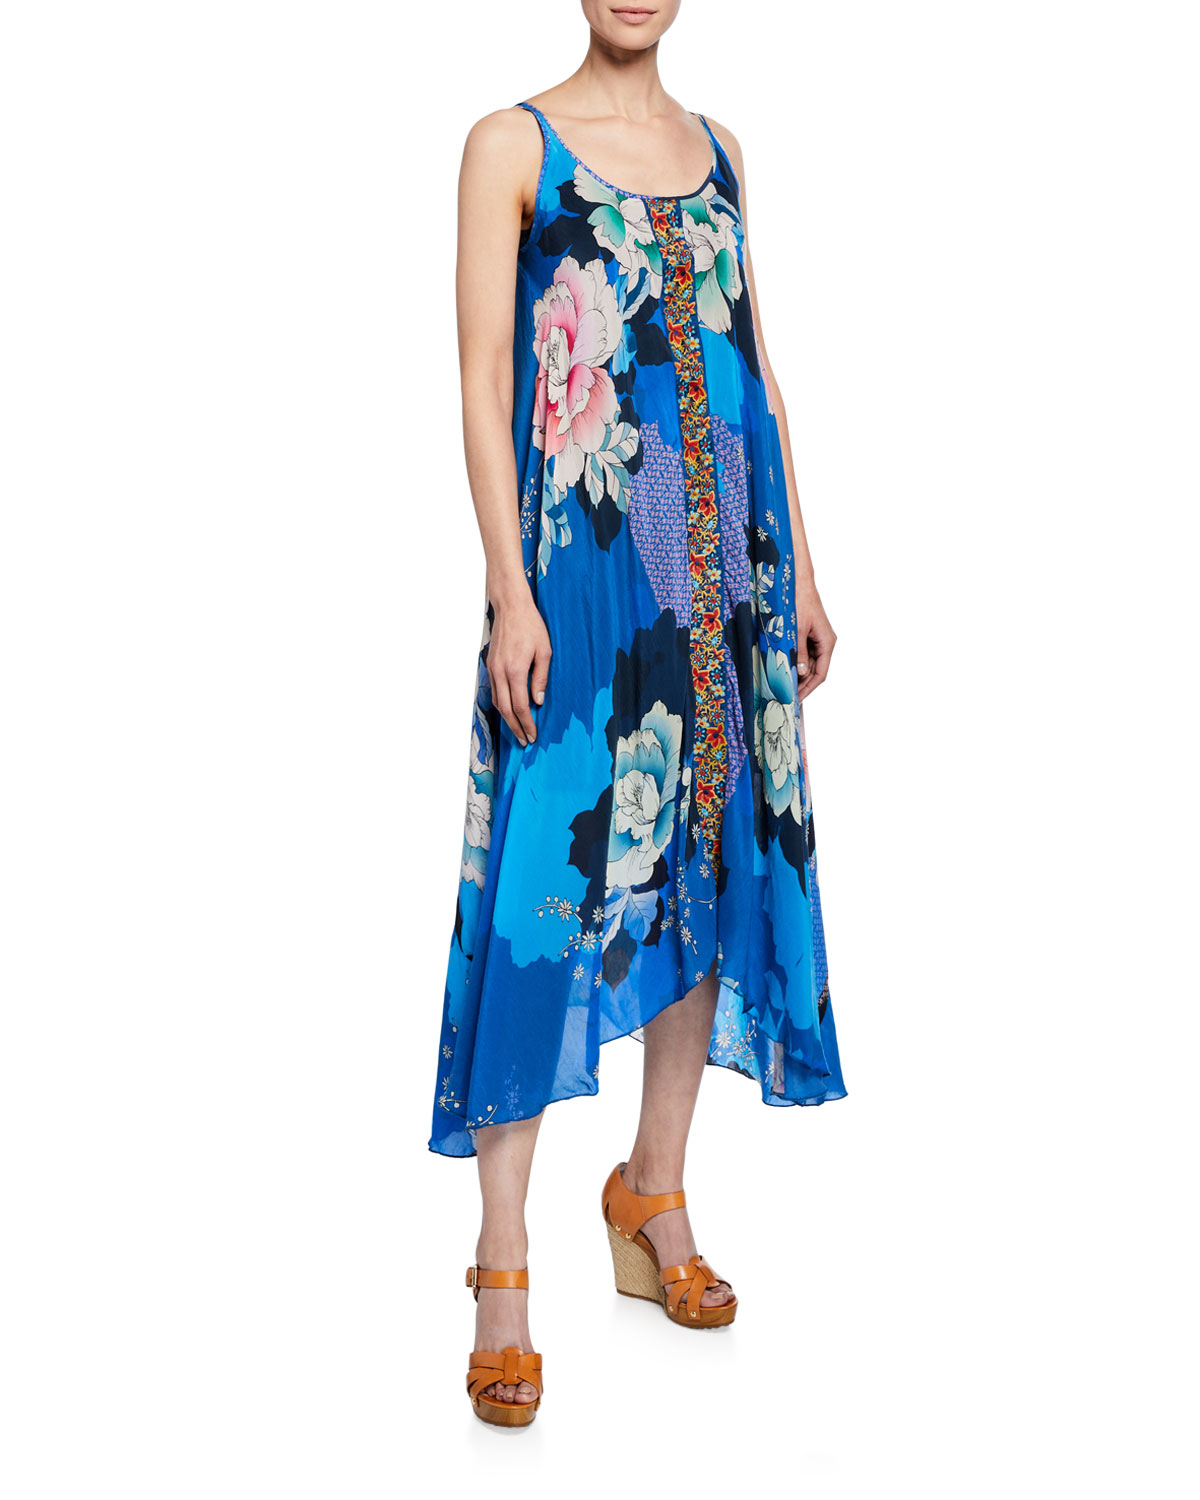 459814bba5b9 Johnny Was Kara Floral-Print Scoop-Neck Sleeveless Dress W/ Slip In Blue